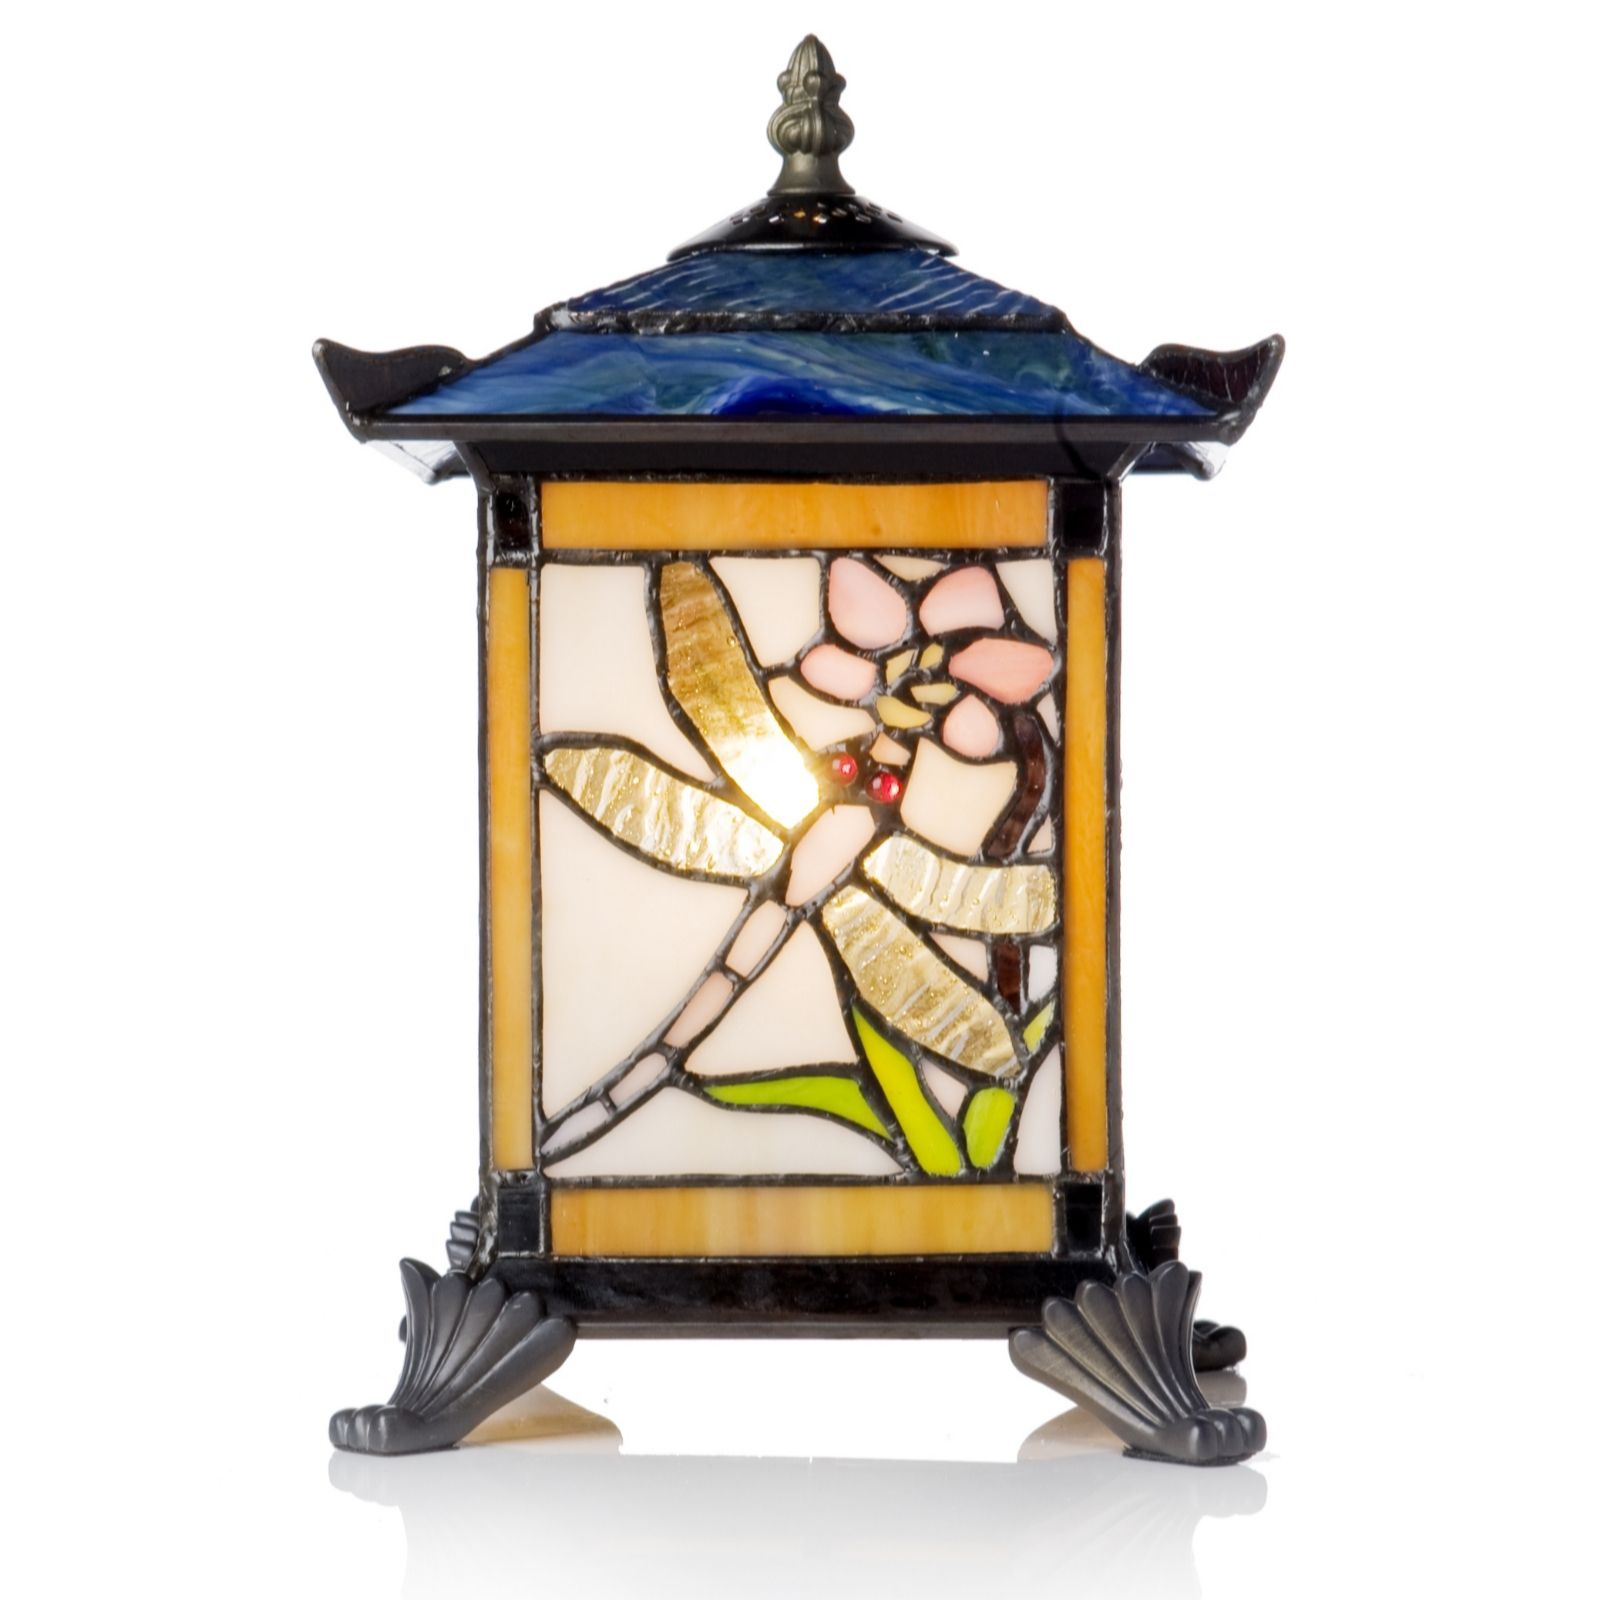 Tiffany Style Handcrafted Dragonfly Lantern Novelty Lamp   QVC UK